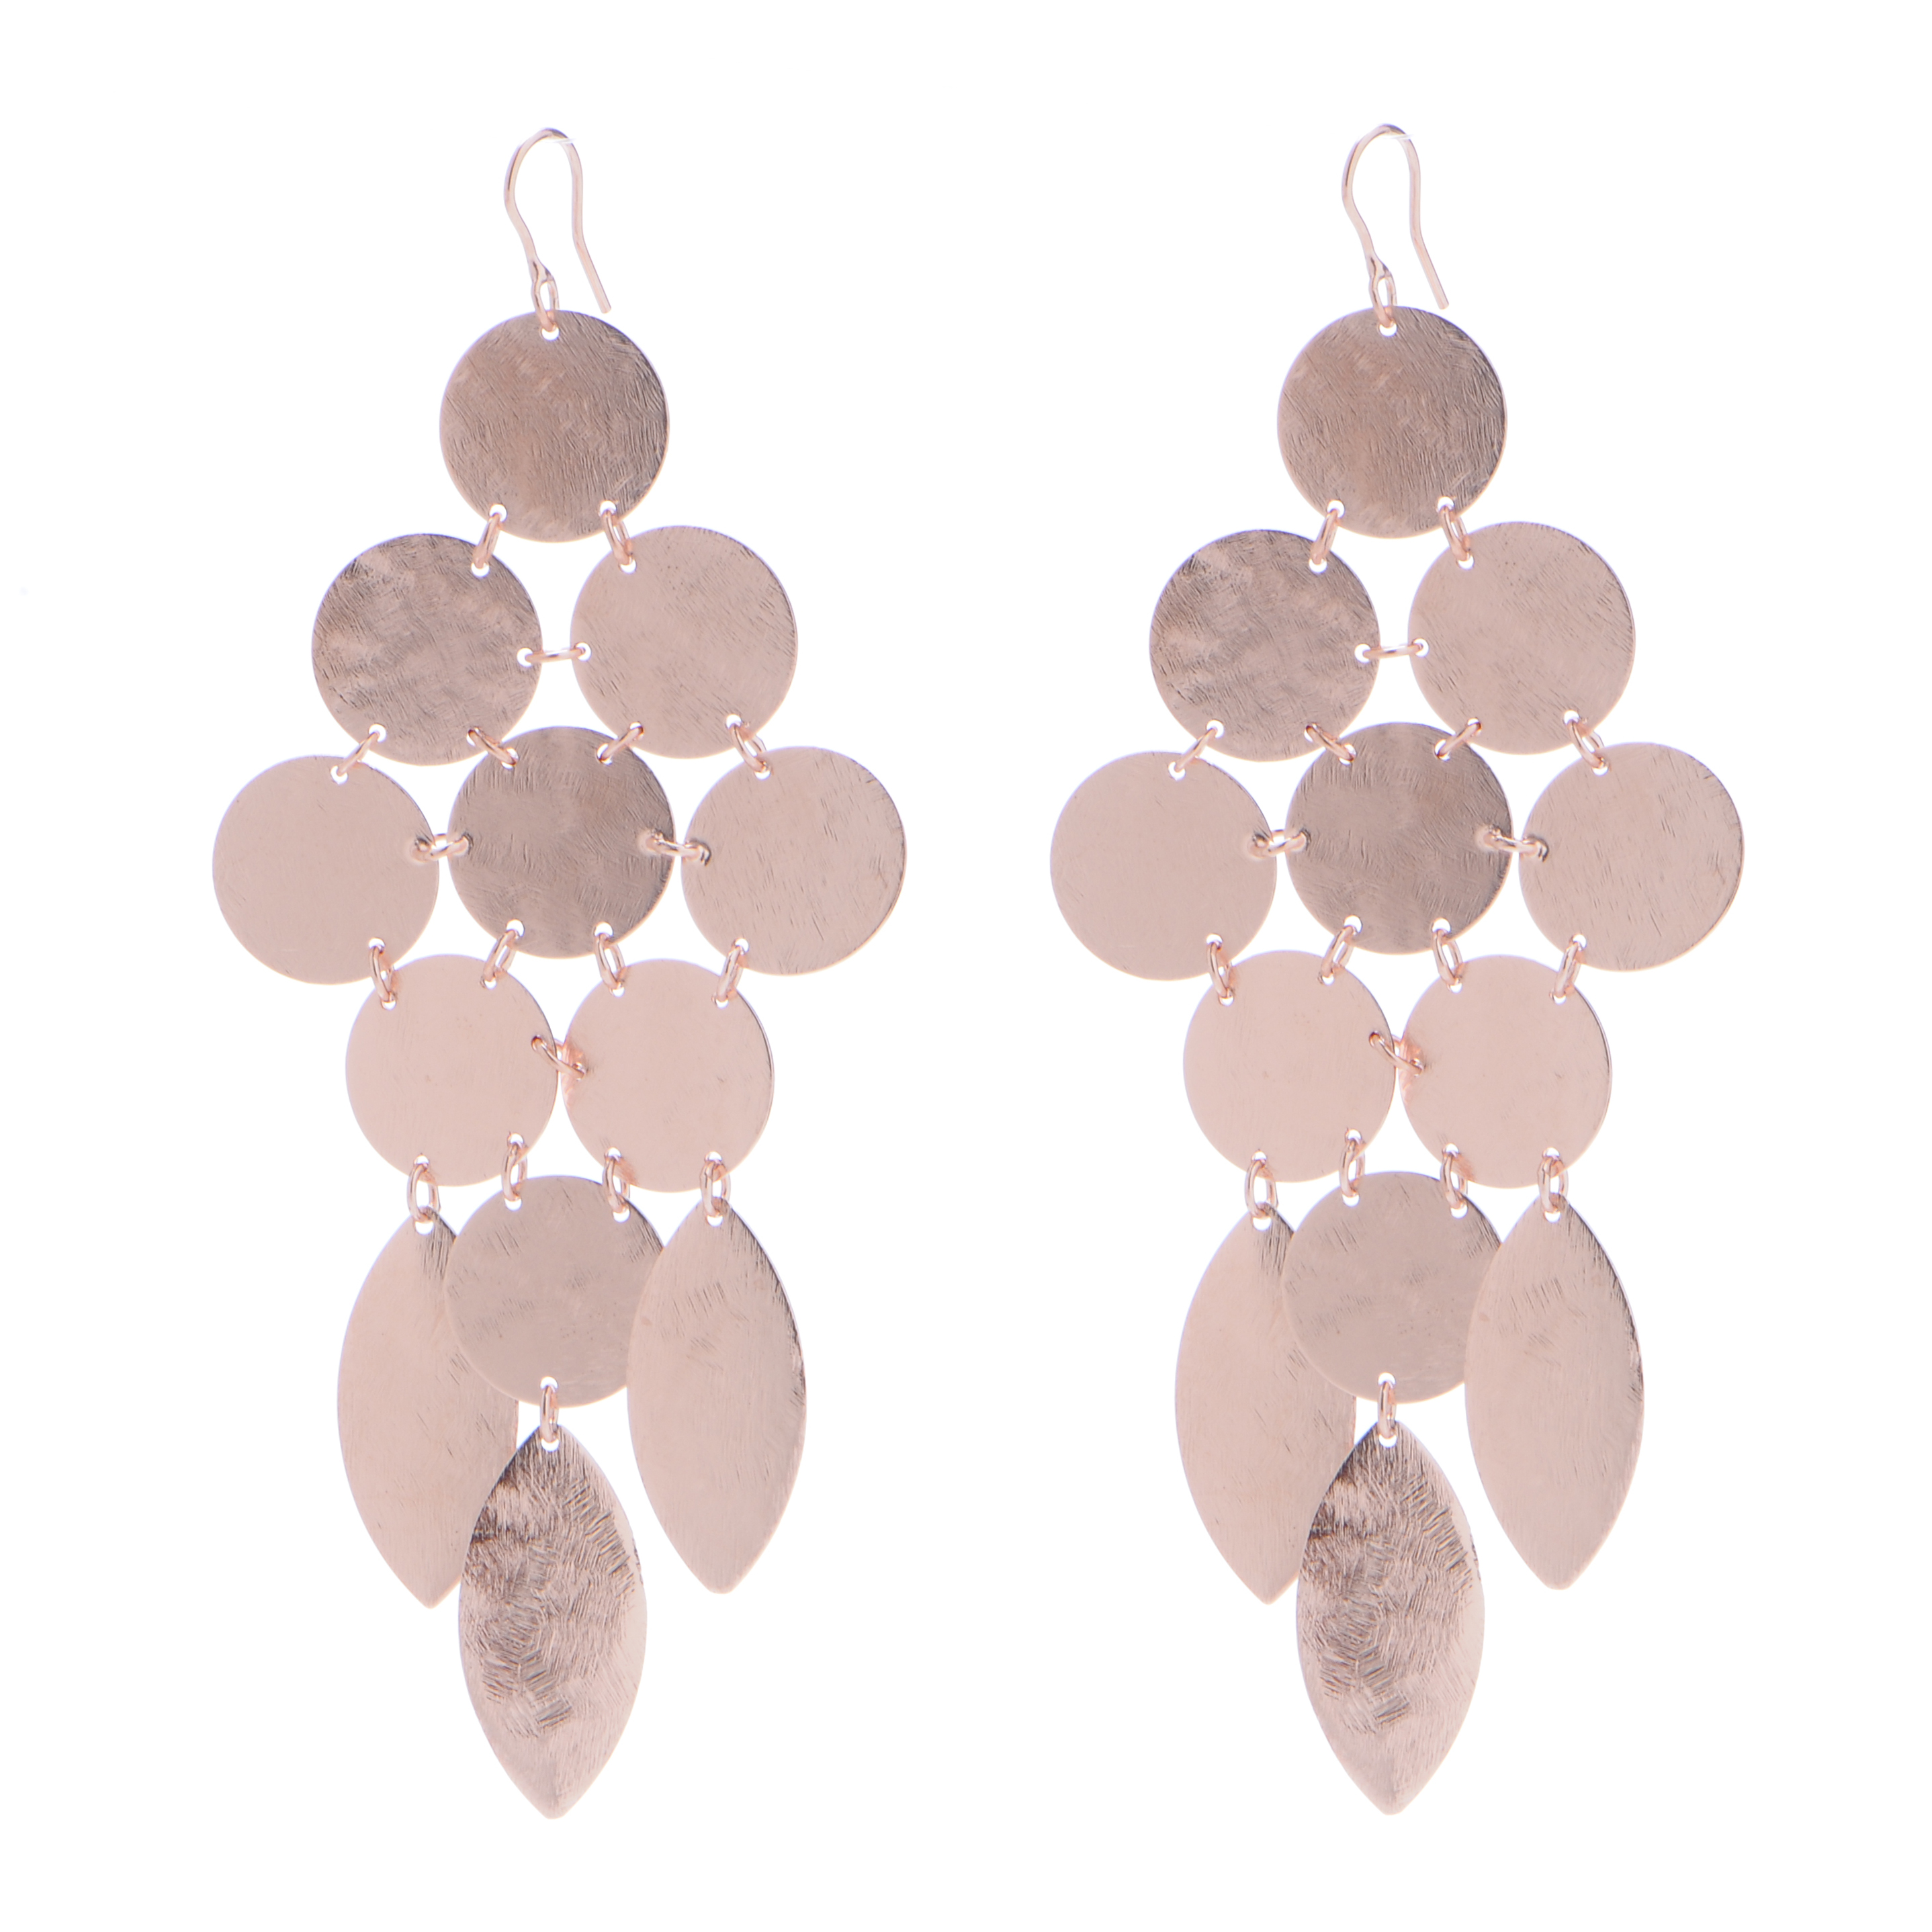 Rose Boho Darling Earrings by MARCIA MORAN